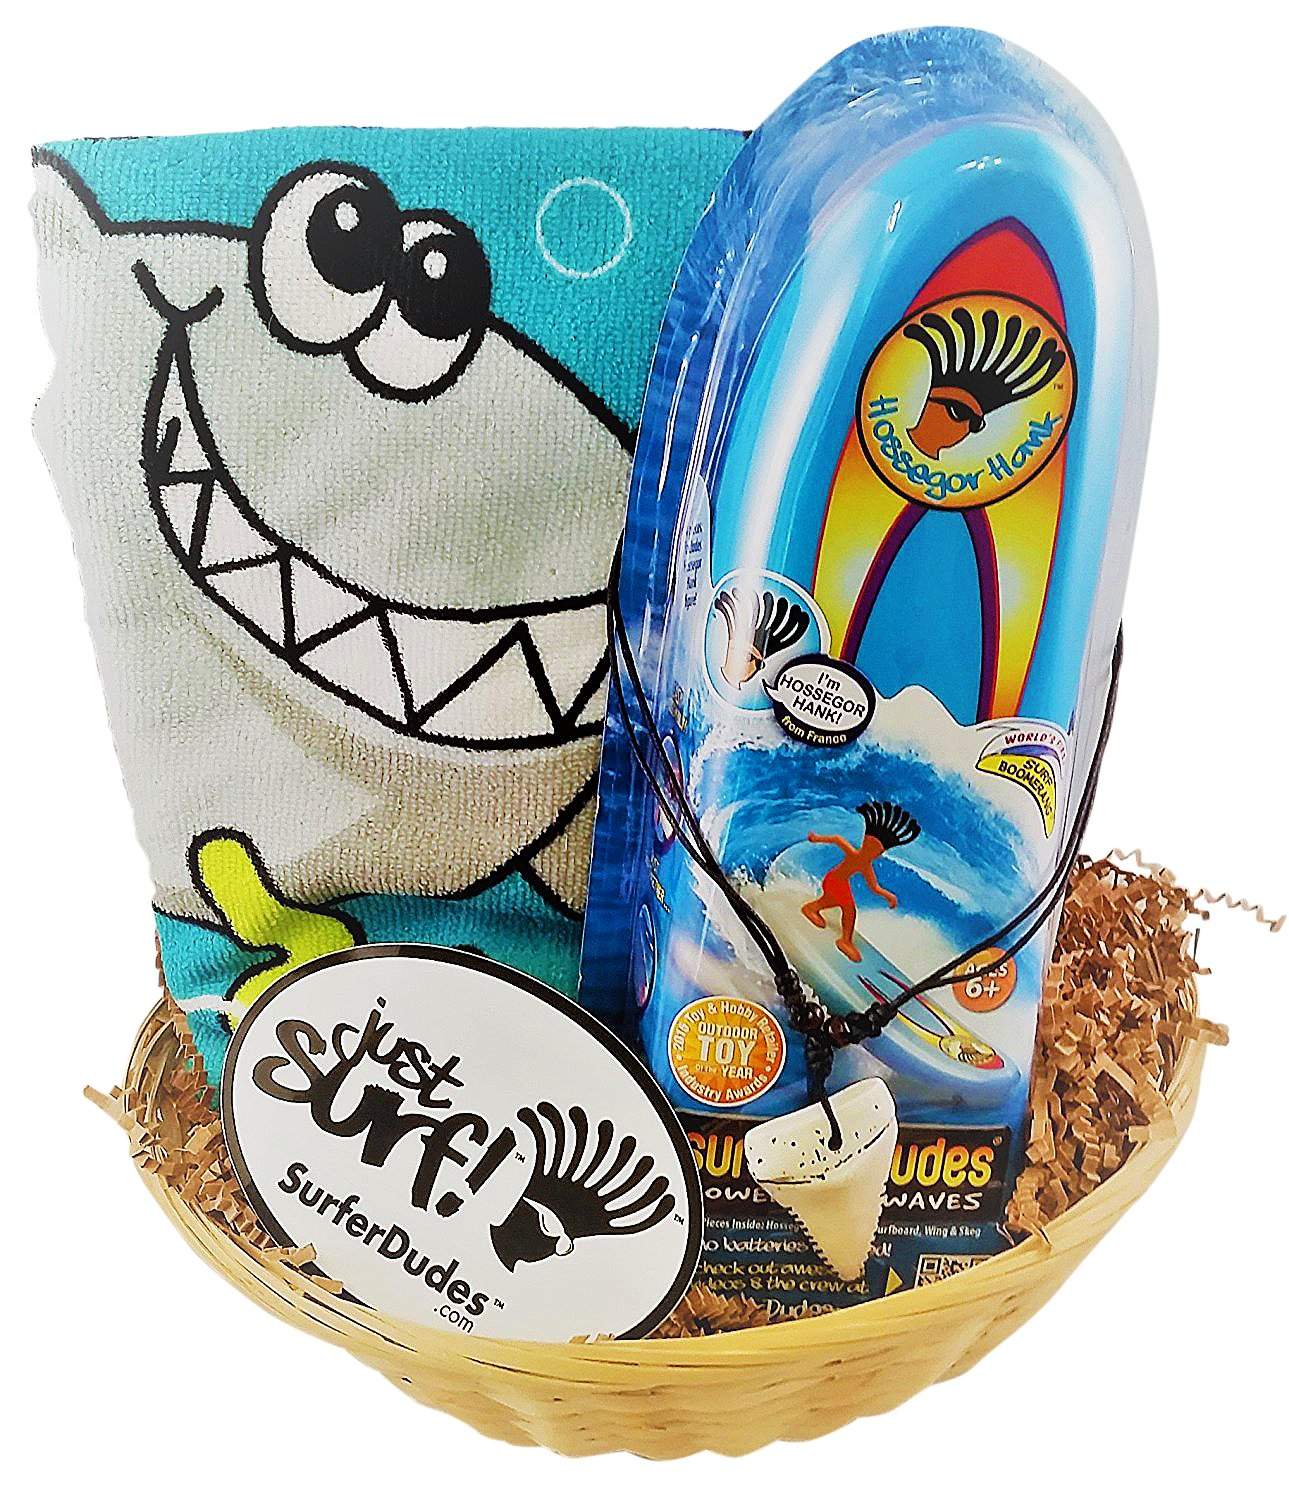 Surfer Dudes 3 Piece Set - Hank Toy, Shark Beach Towel, Shark Tooth Necklace by Surfer Dudes (Image #1)